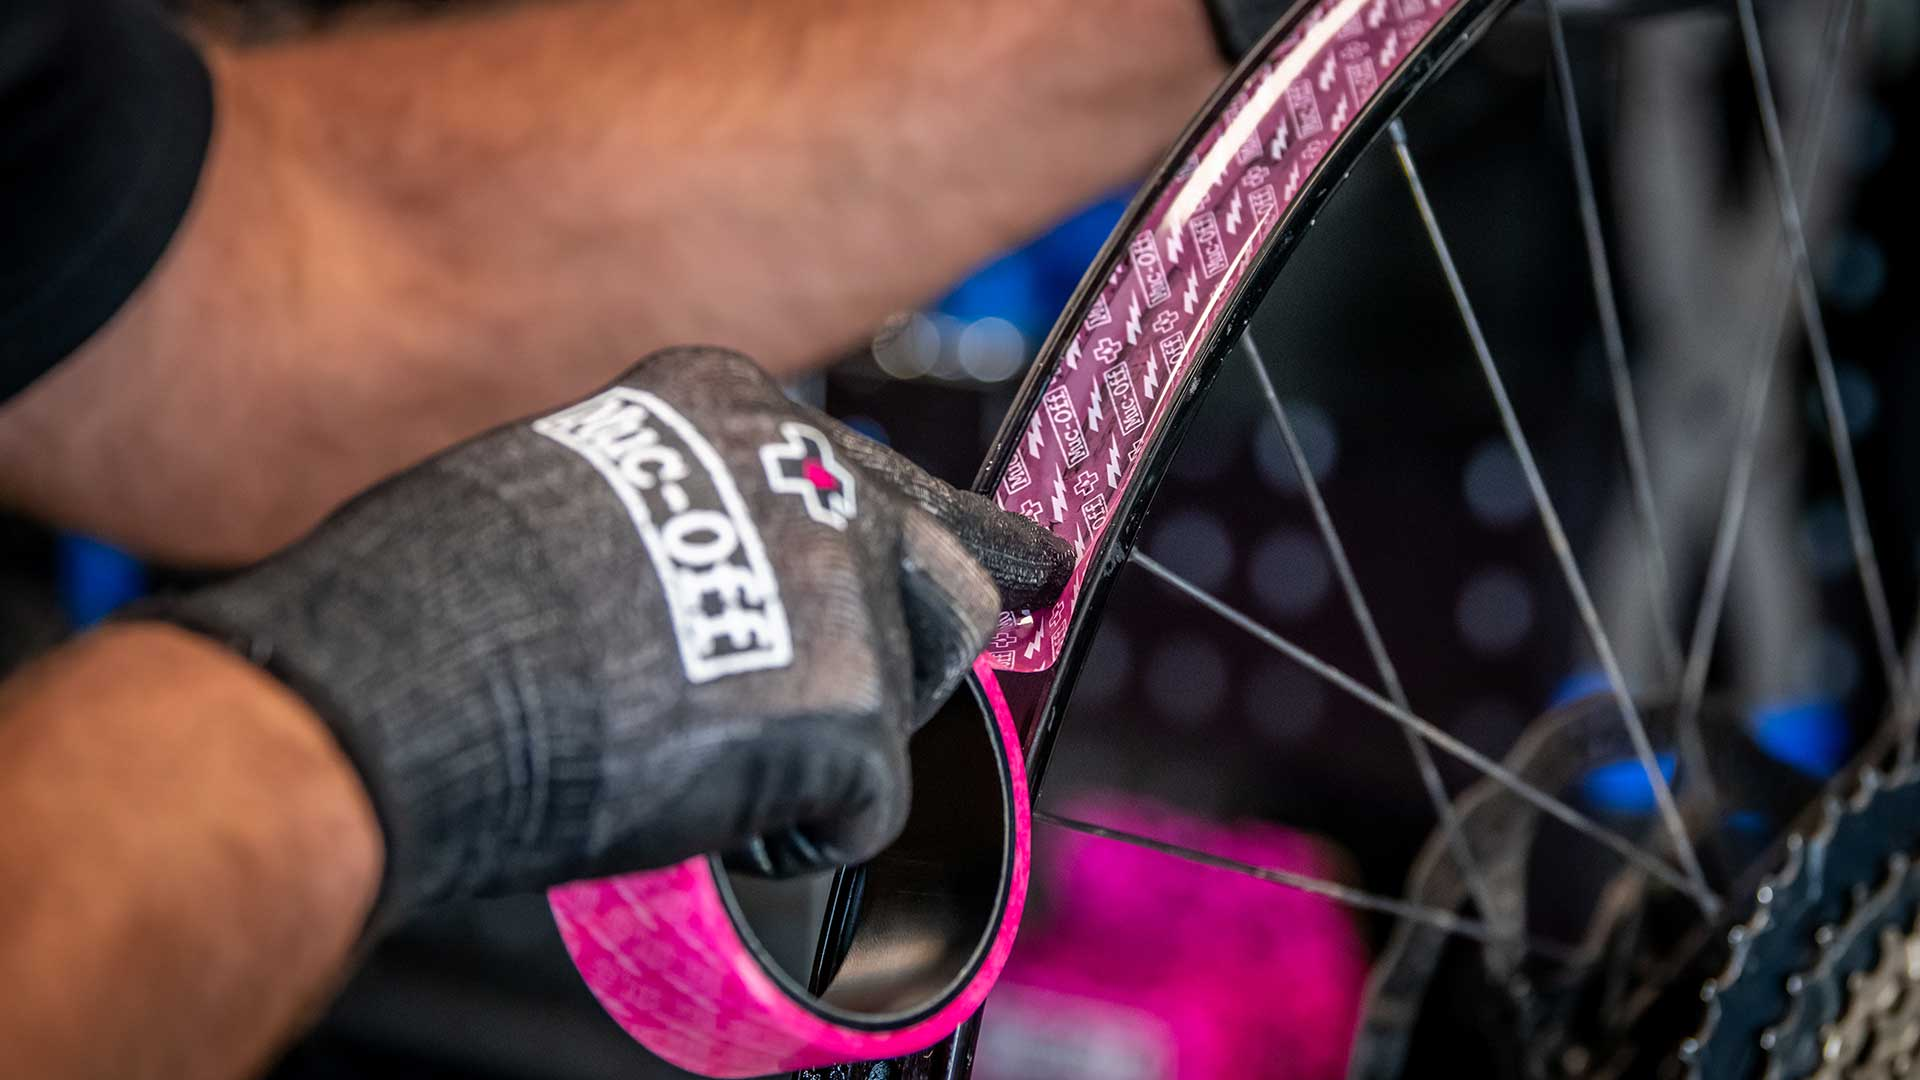 Applying Muc-Off tubeless tape to a bike rim